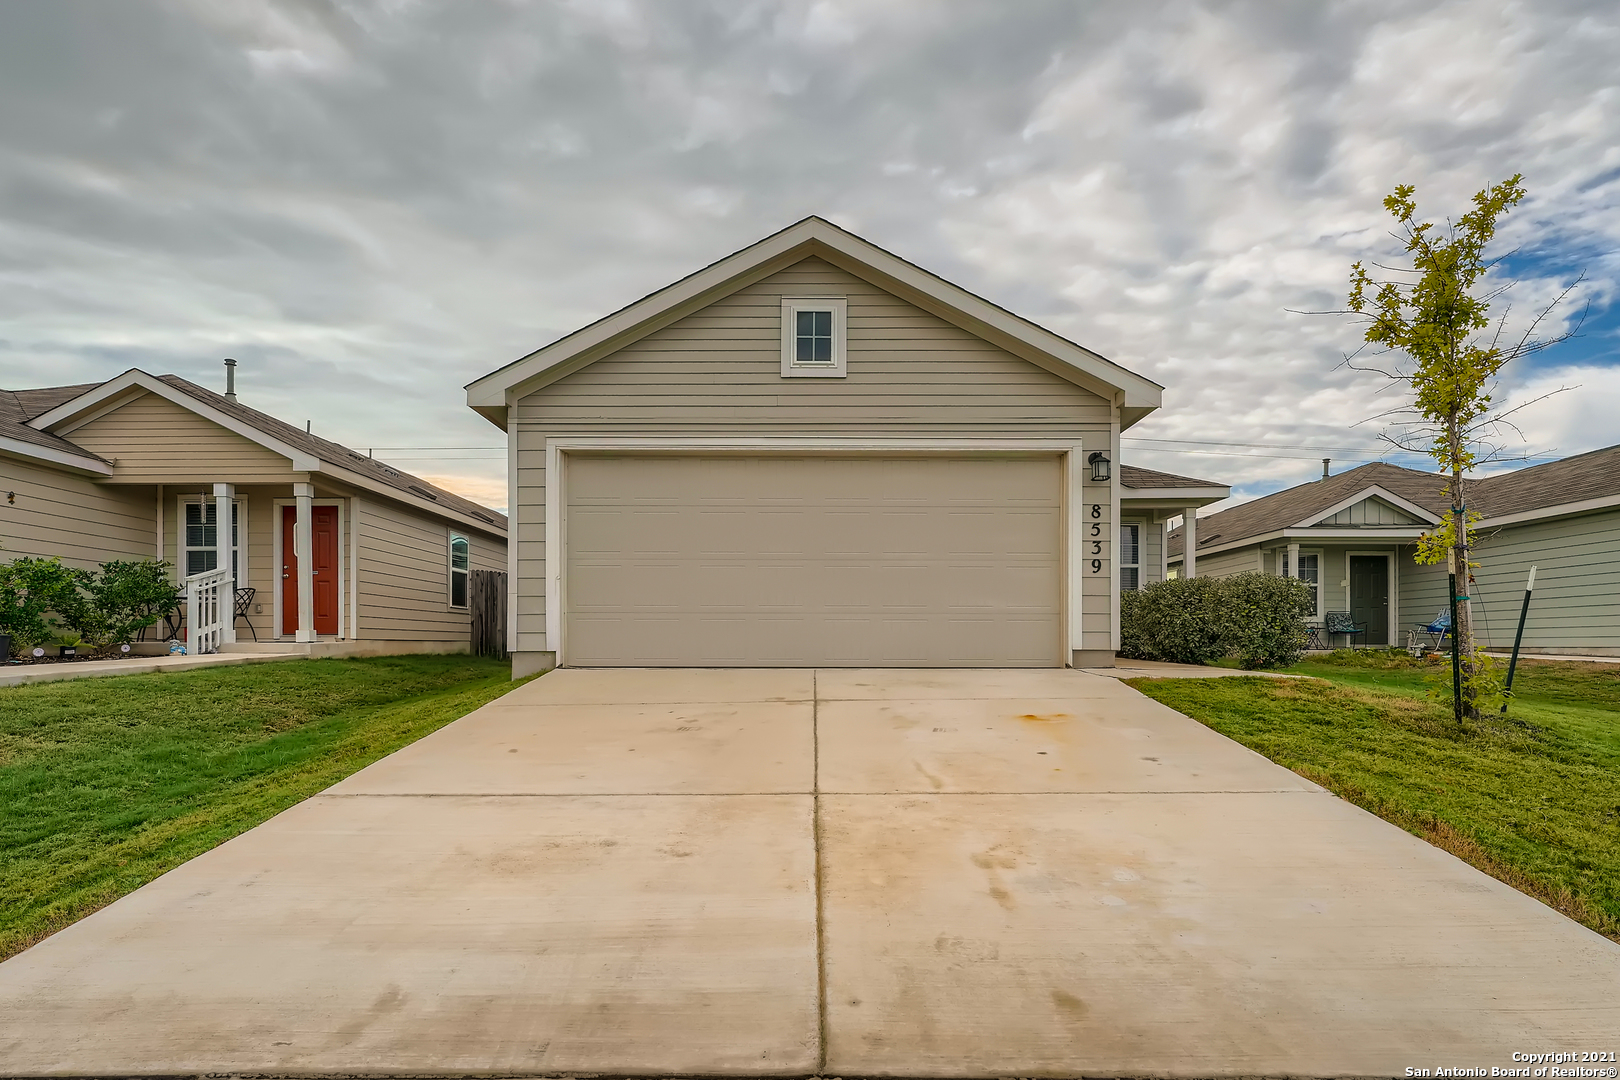 Amazing 3 bedroom, 2 bathroom home in the sought-after Waterwheel Trails community! Fall in love wit